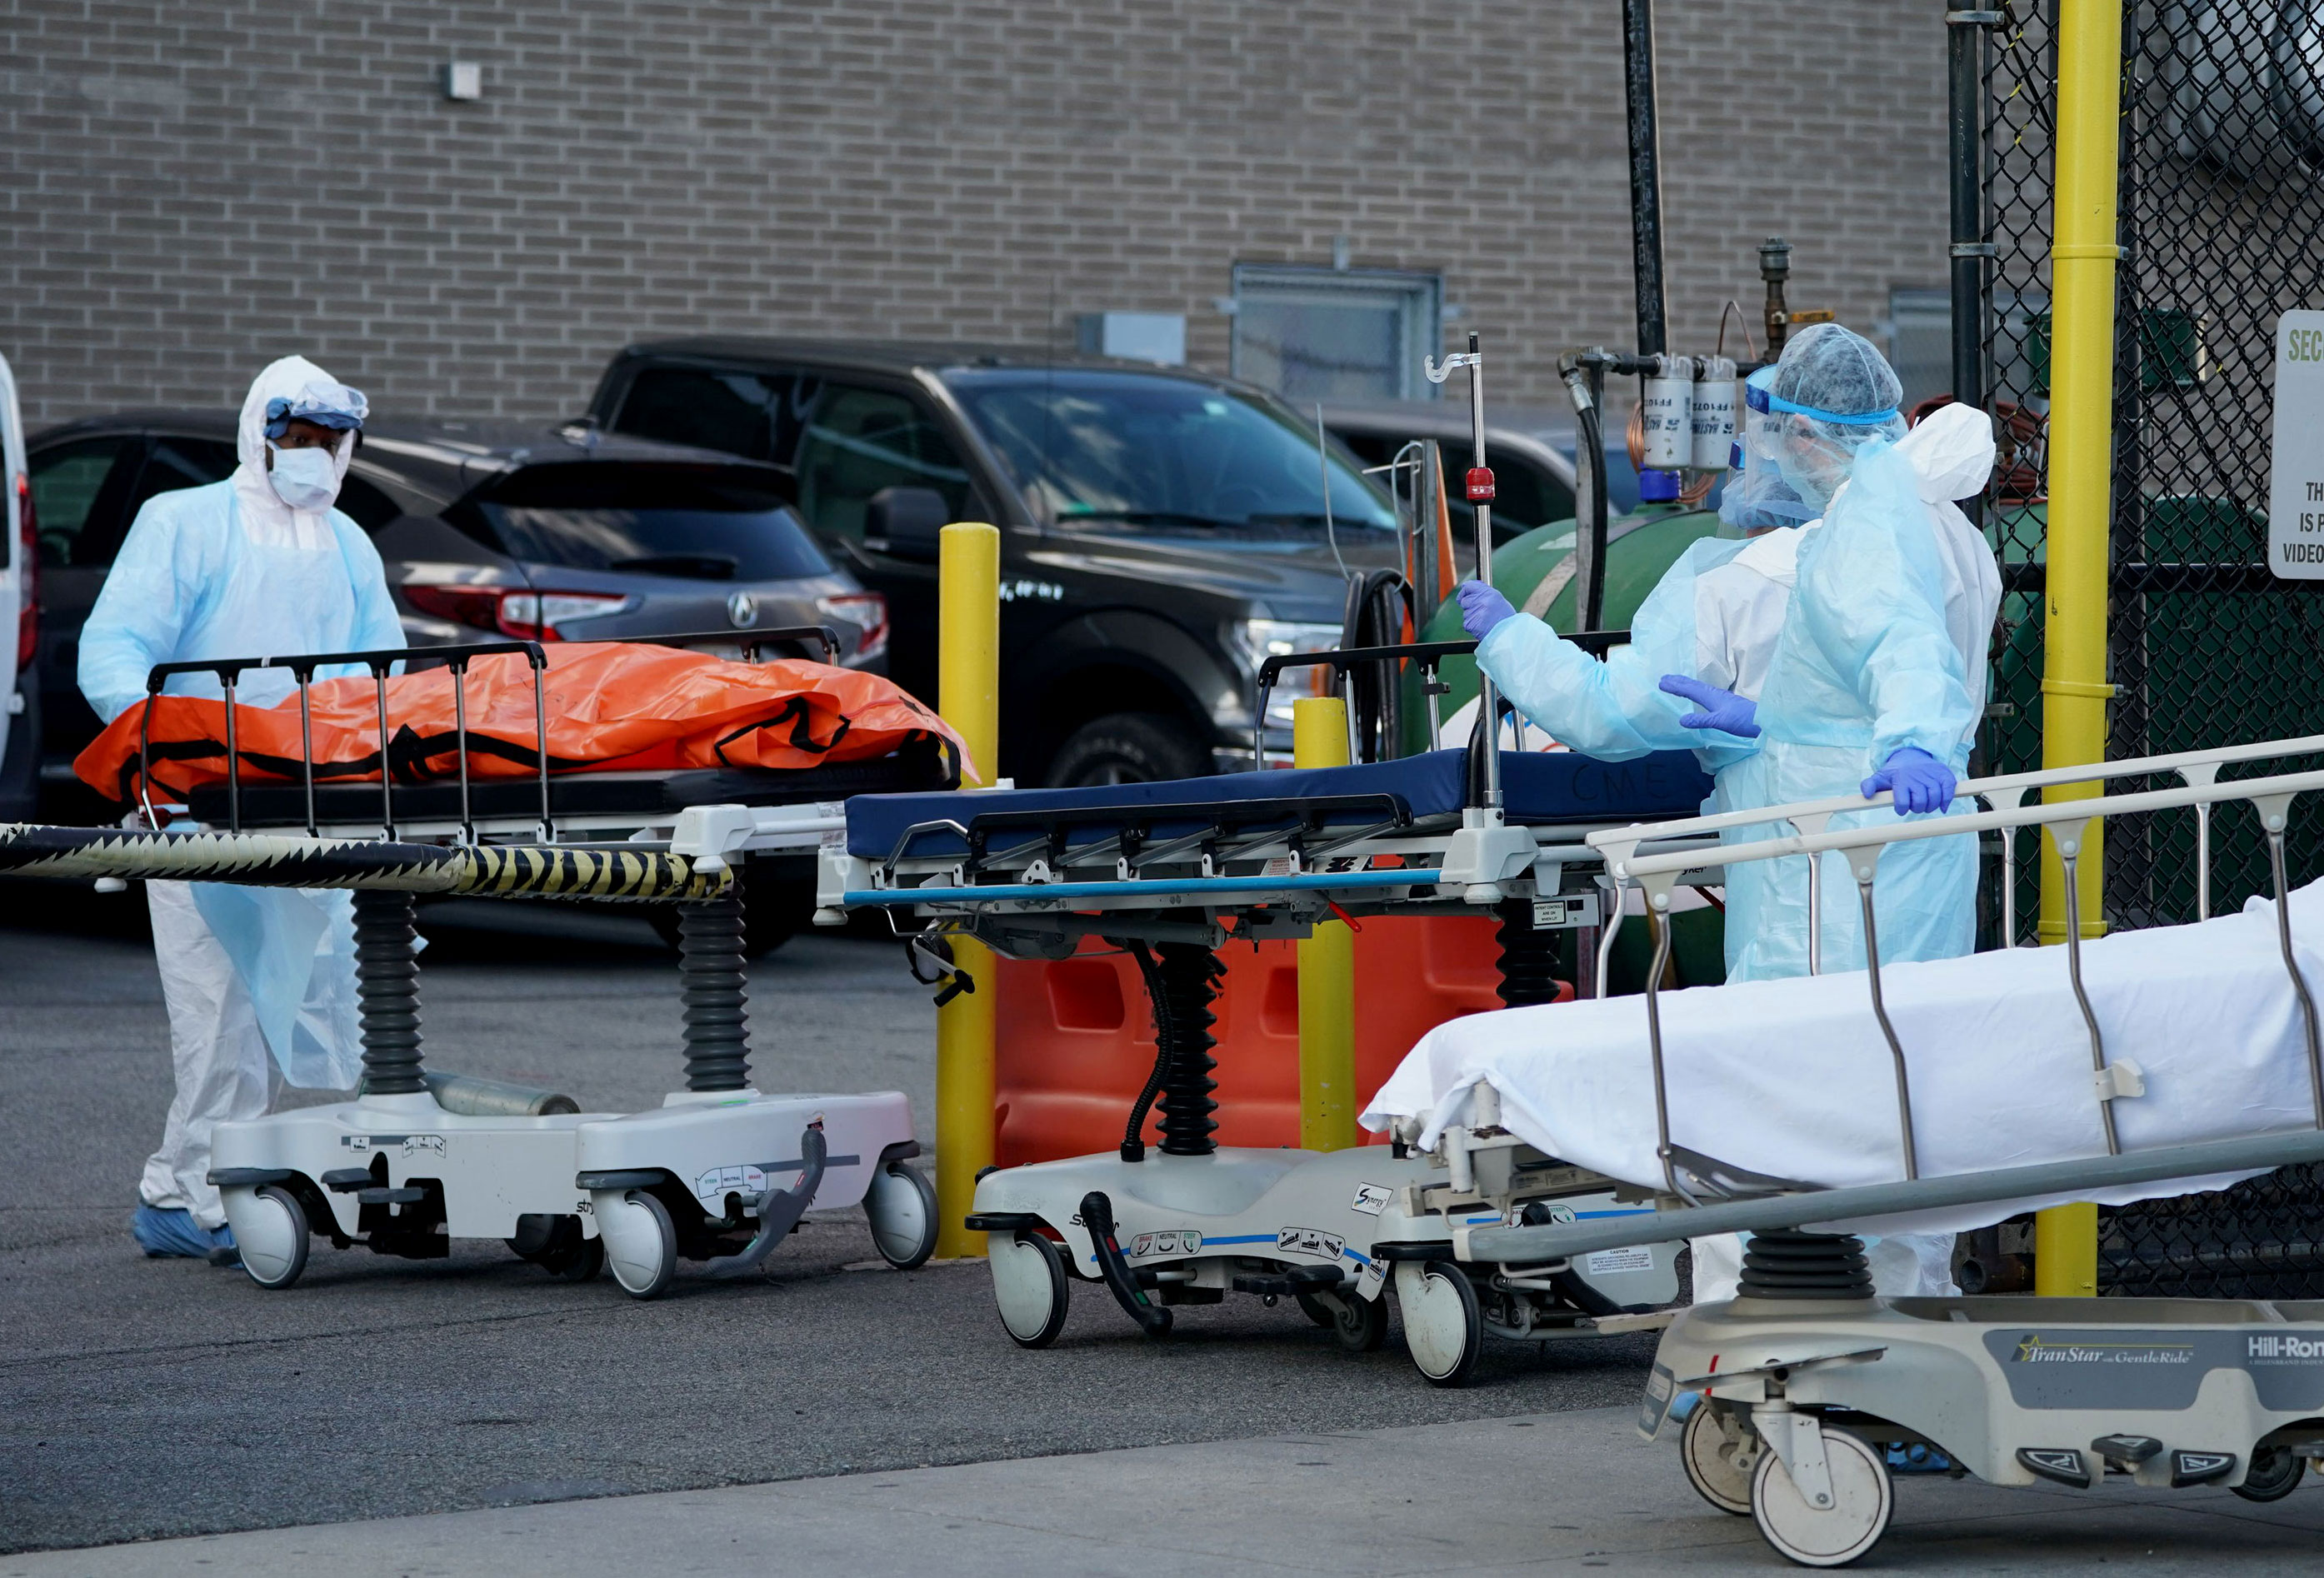 Bodies are moved to a refrigerator truck serving as a temporary morgue outside of Wyckoff Hospital in Brooklyn, New York on April 4.